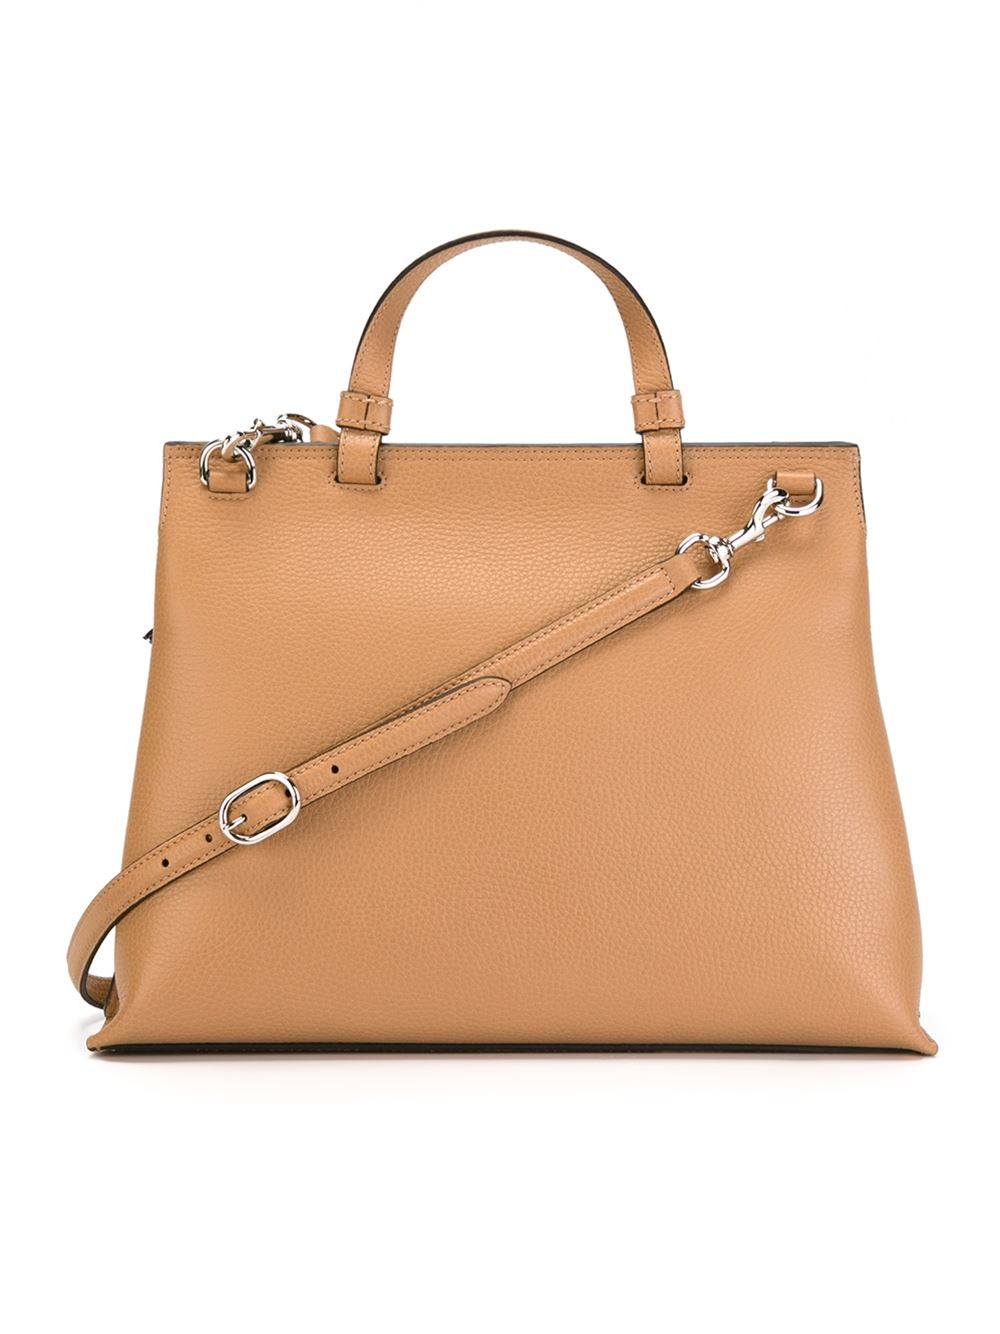 Lyst - Gucci Bamboo Daily Bag in Natural d221920c09f